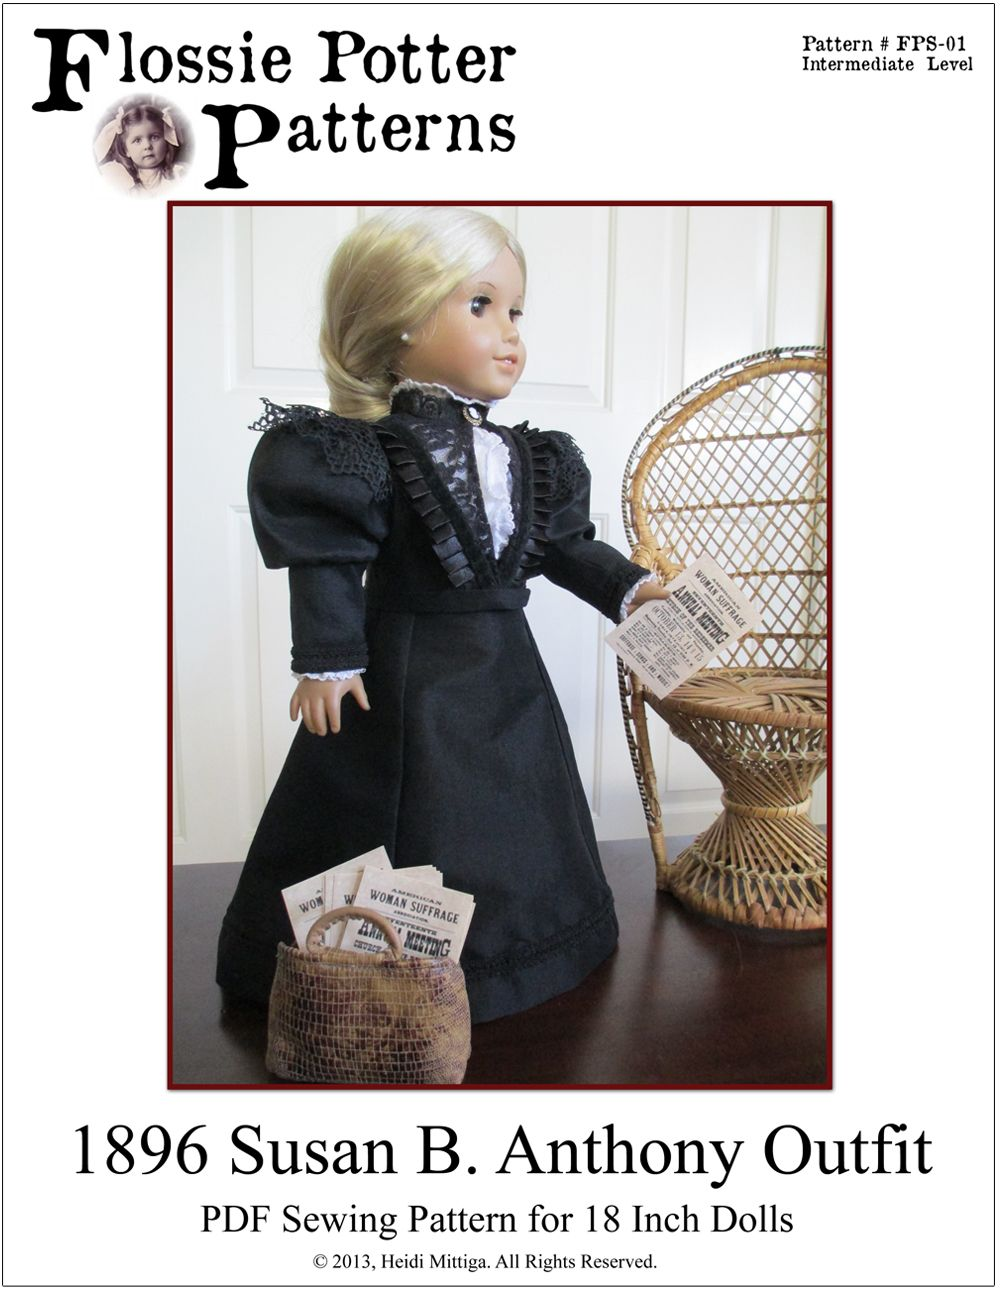 The 1896 Susan B. Anthony Outfit pdf sewing pattern is available on www.pixiefaire.com.